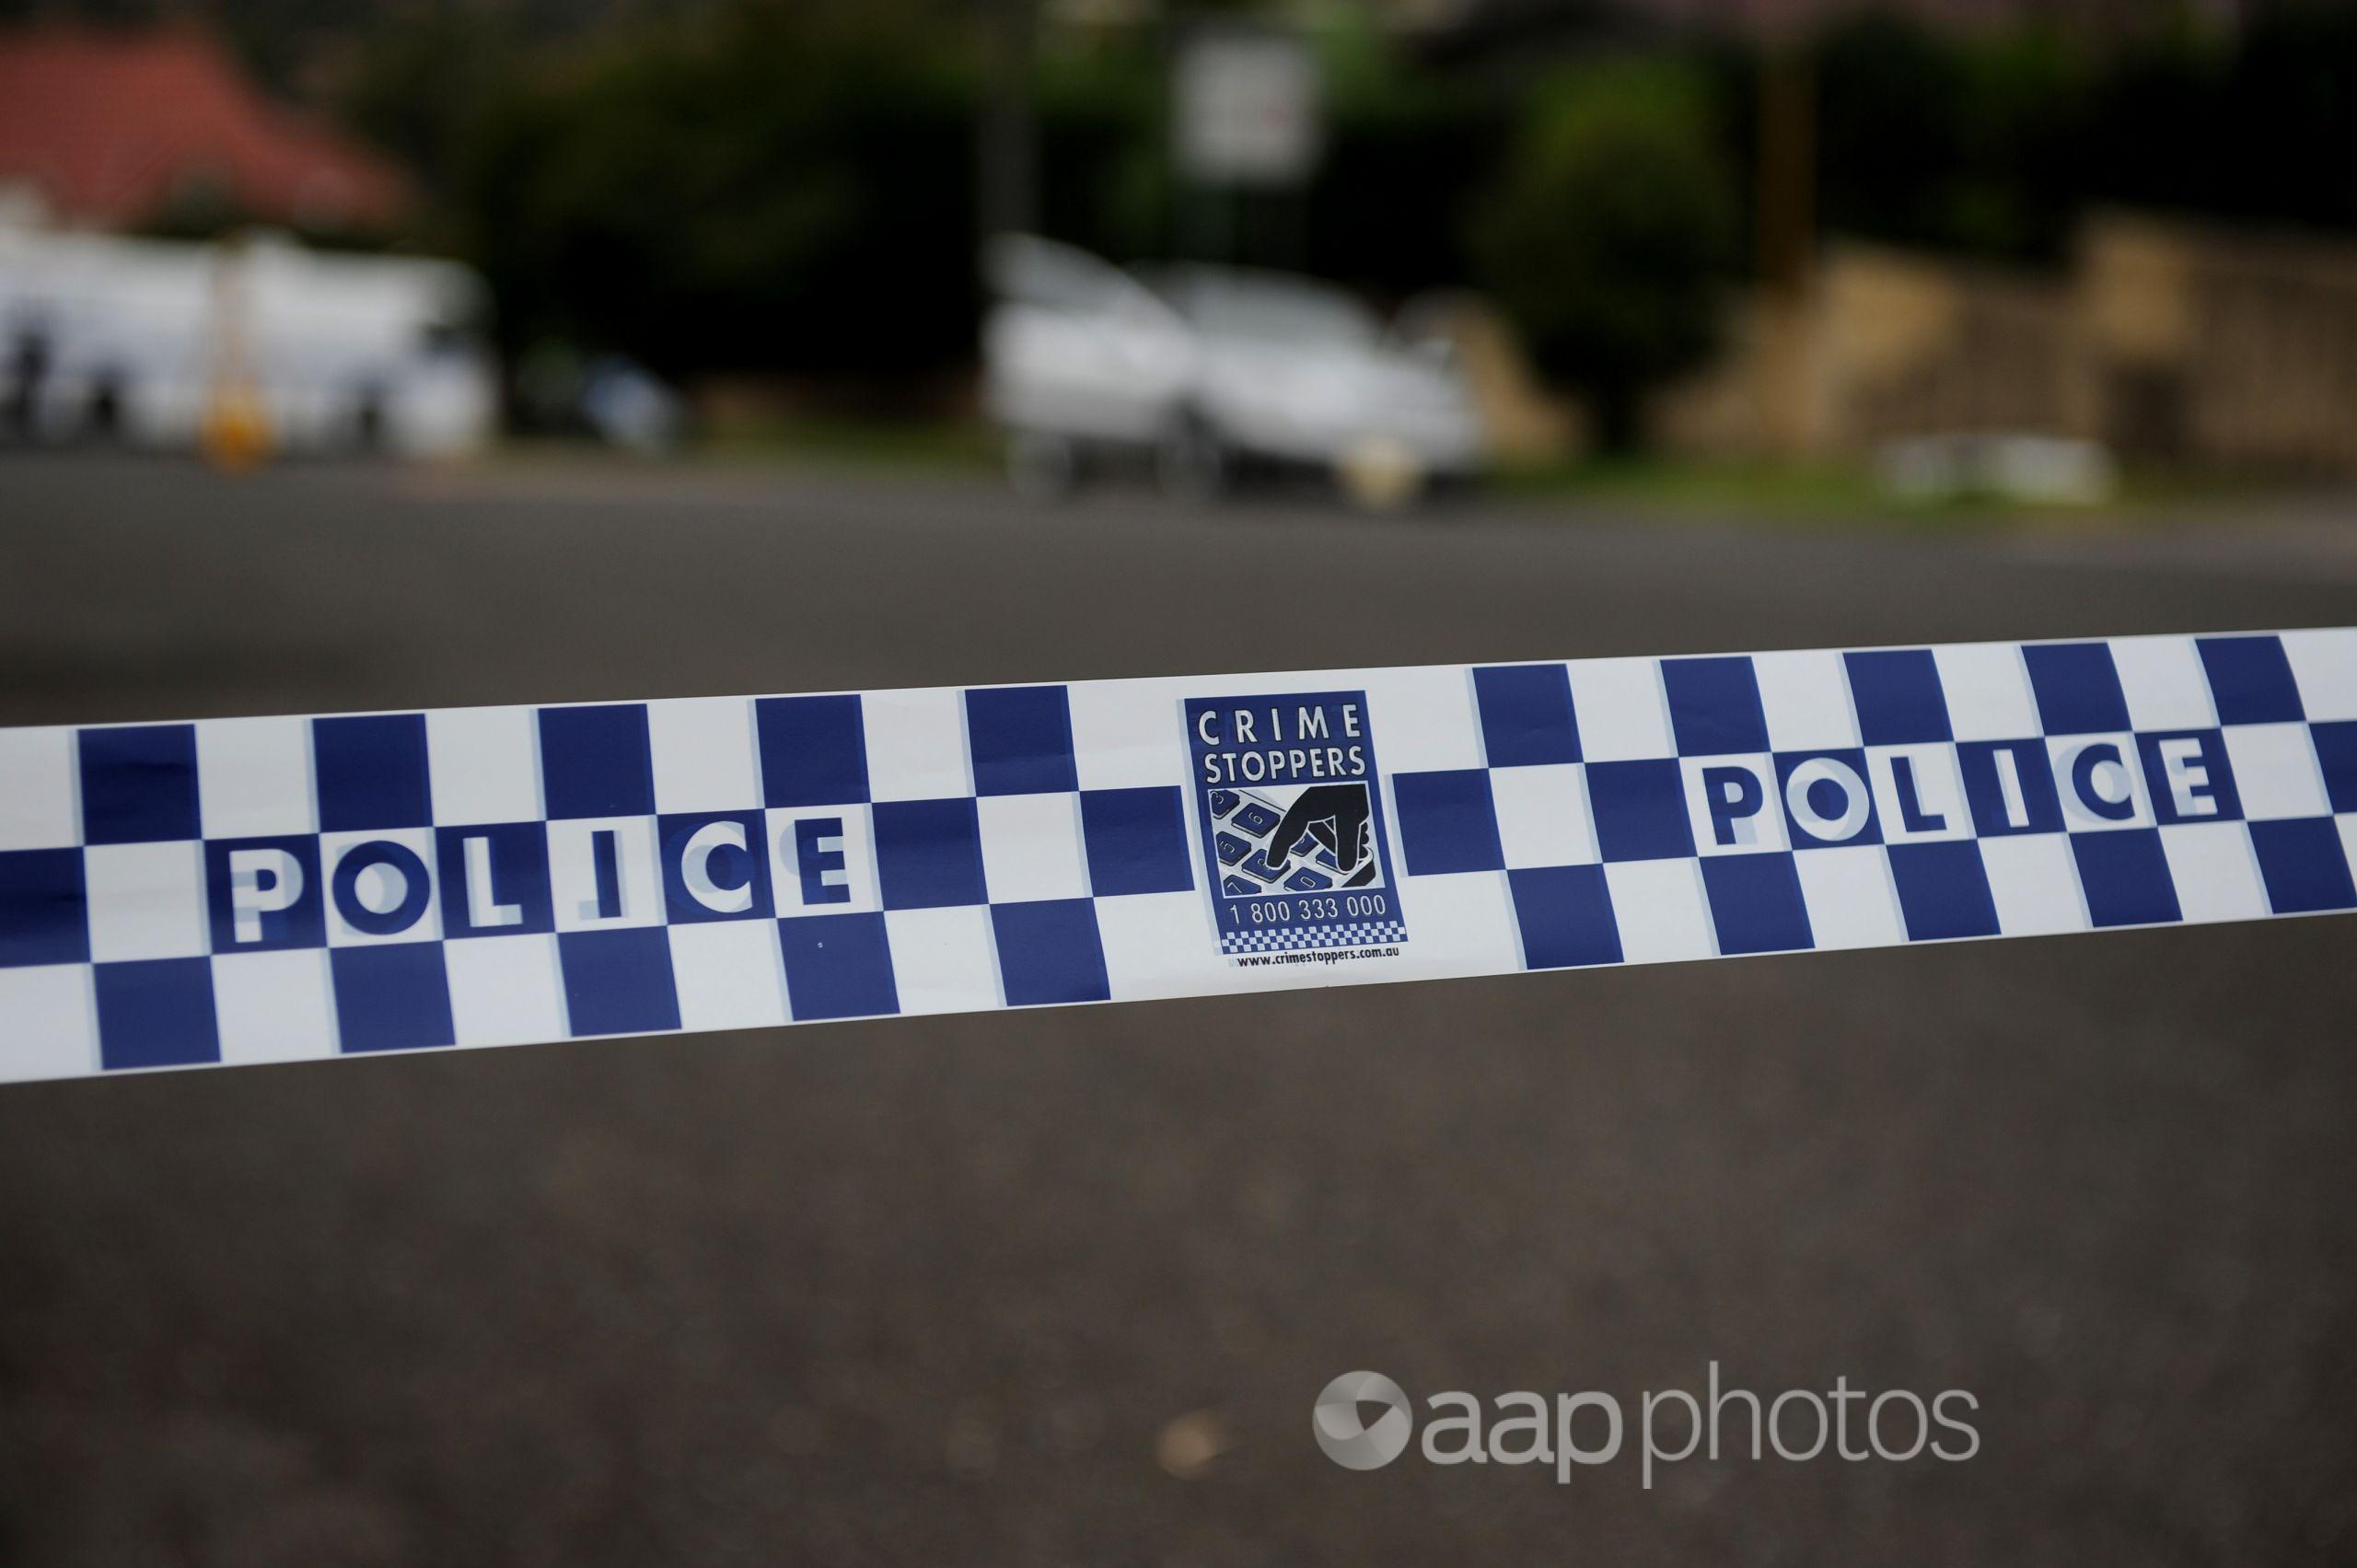 Police tape restricts access to a street.